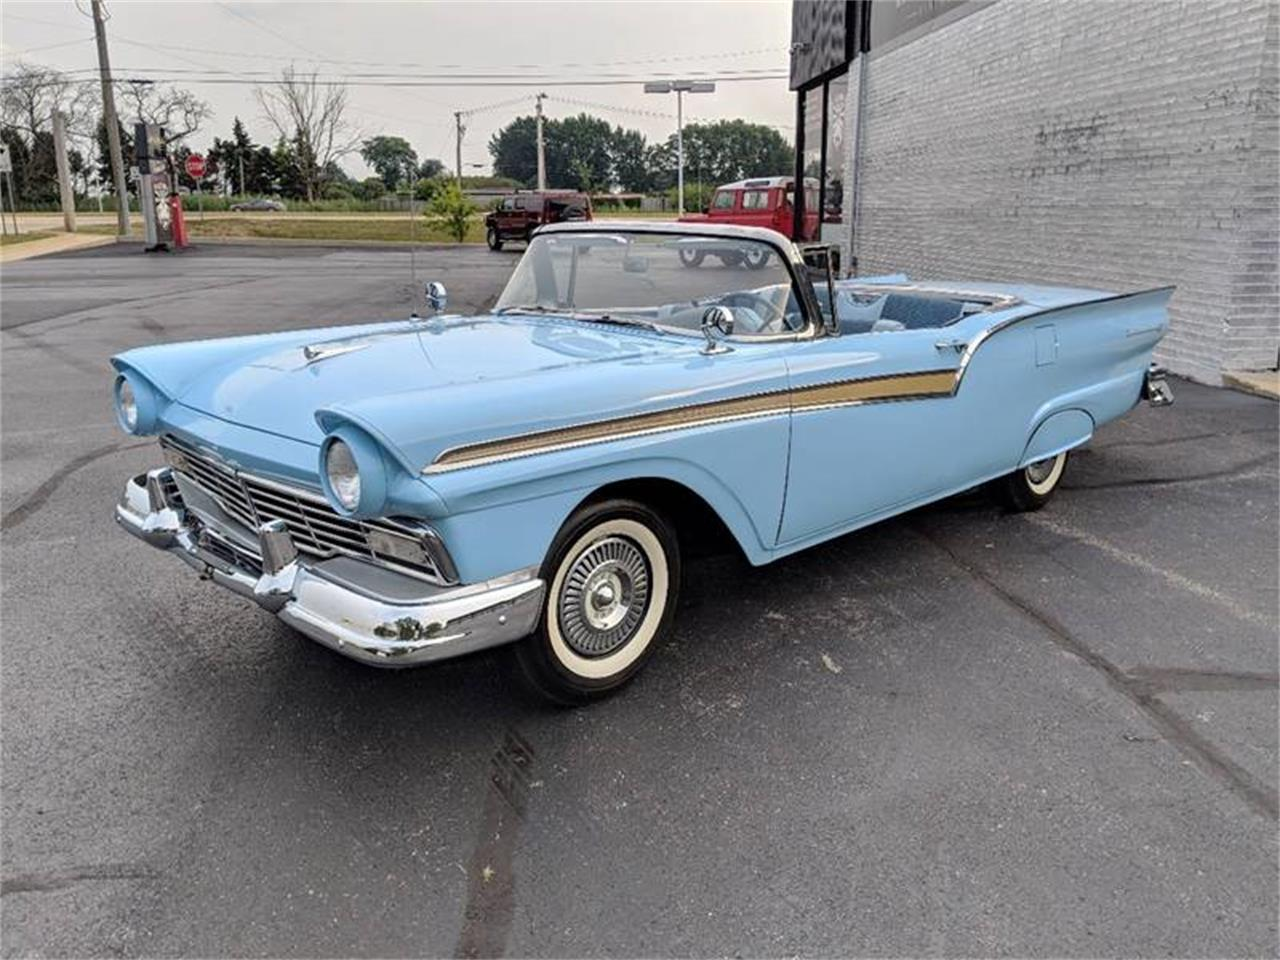 Large picture of 57 fairlane o8du